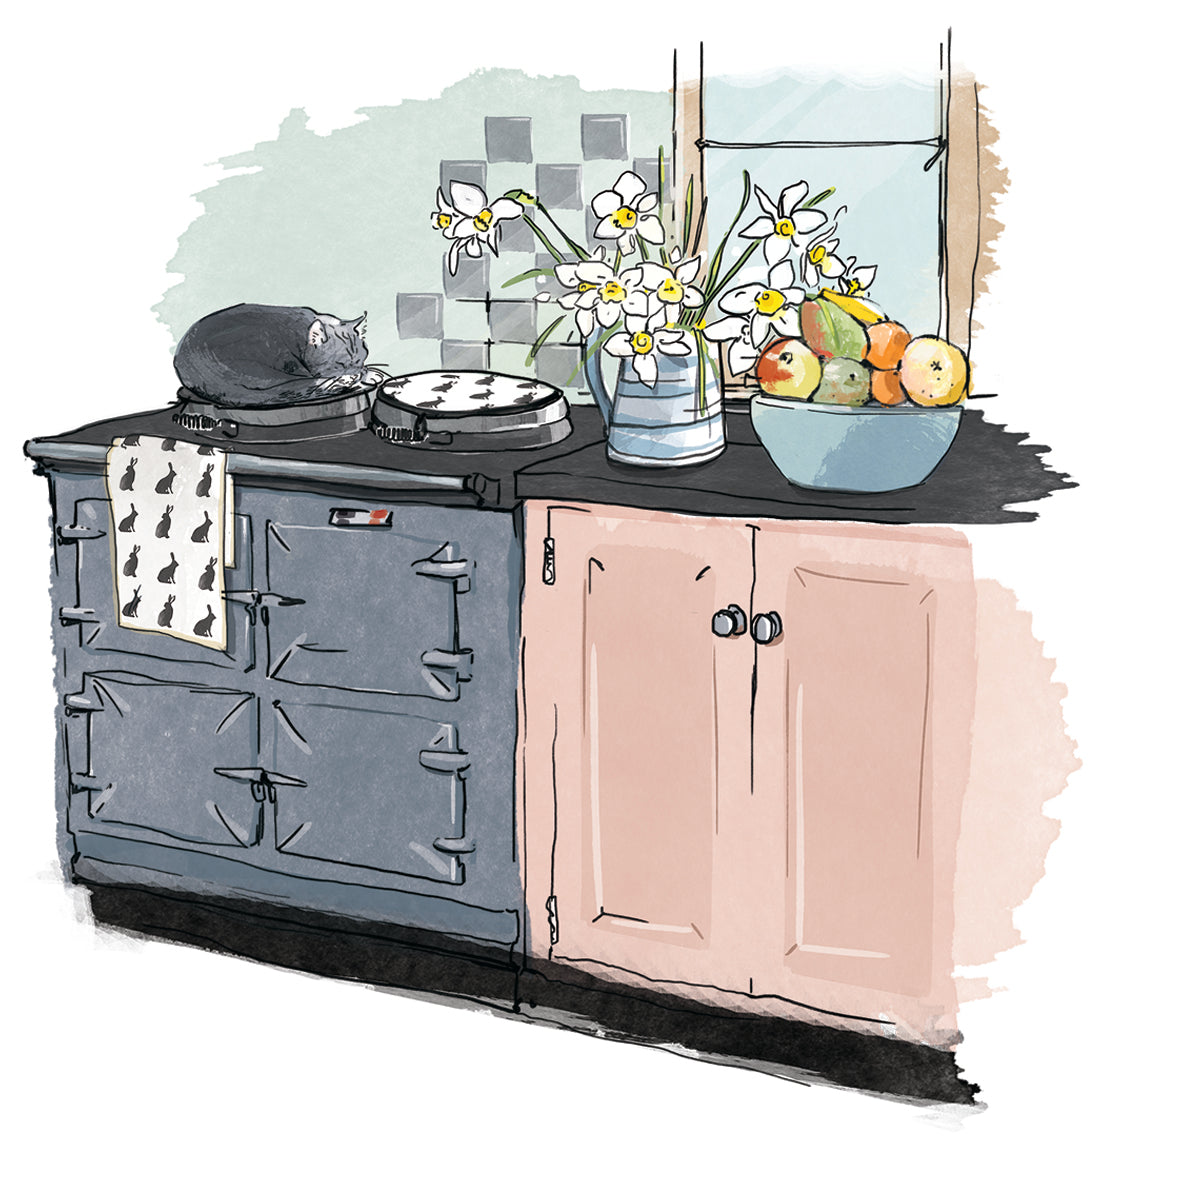 Information & guides related to Aga range cookers